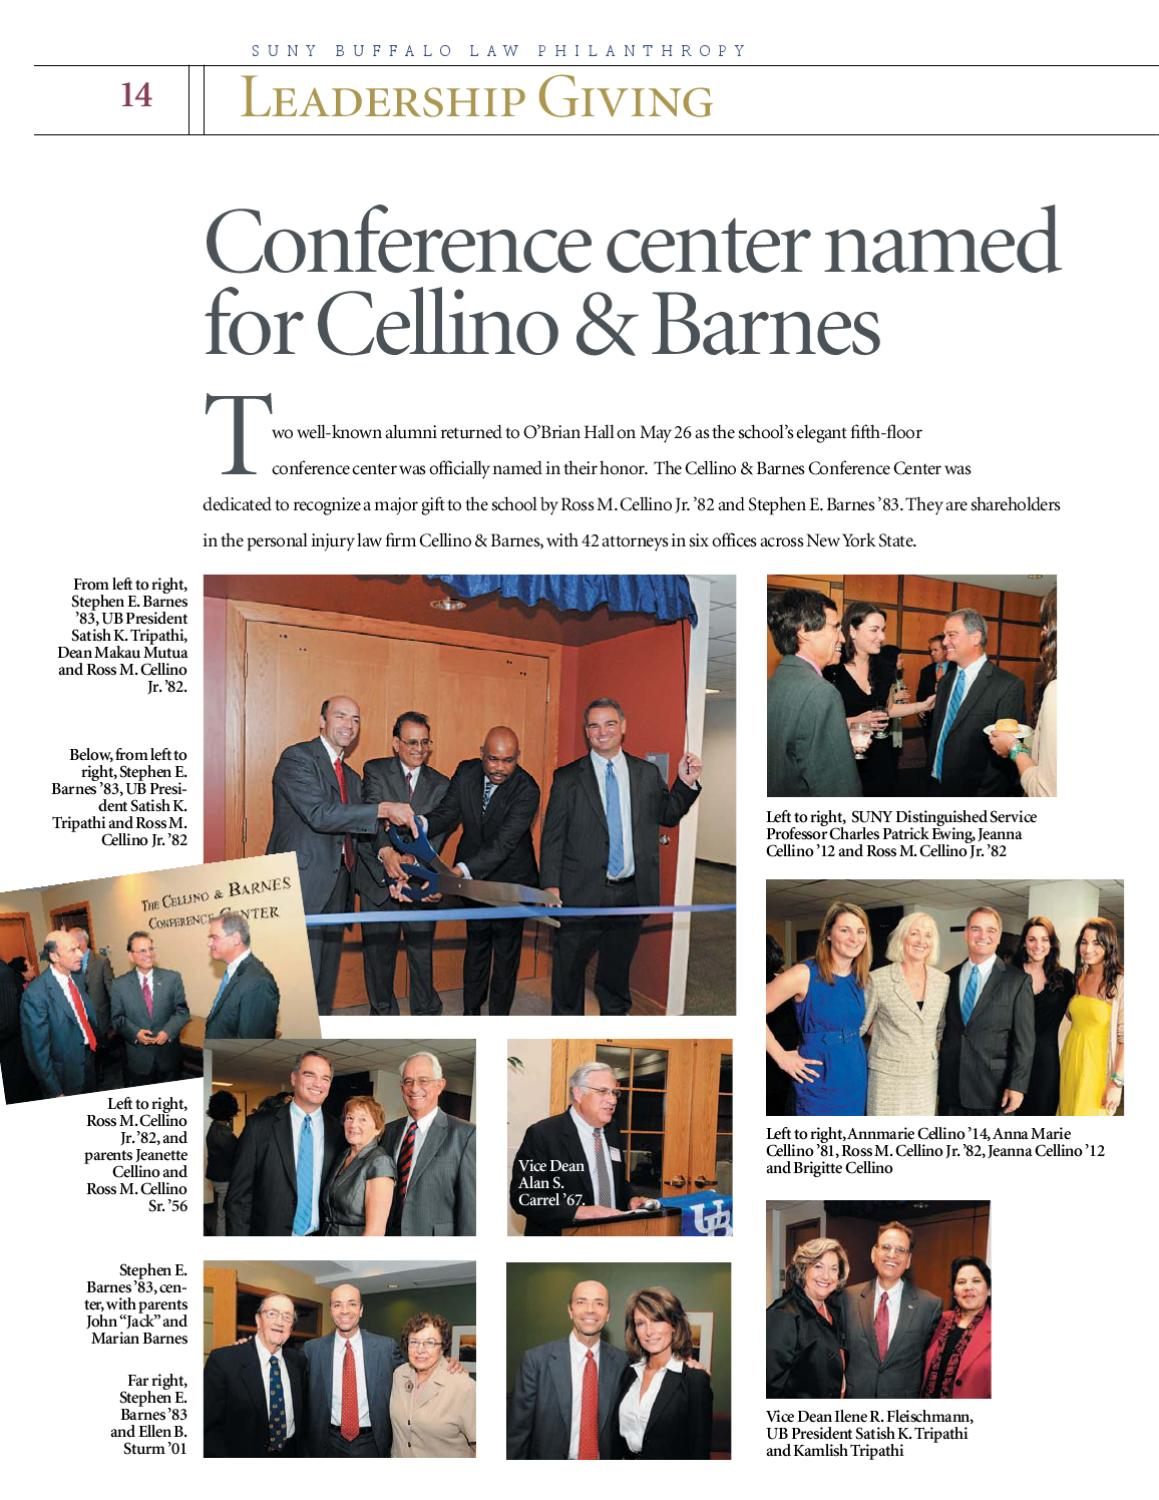 suny barns of buffalo docs university law page by issuu barnes school philanthropy ublaw cellino at